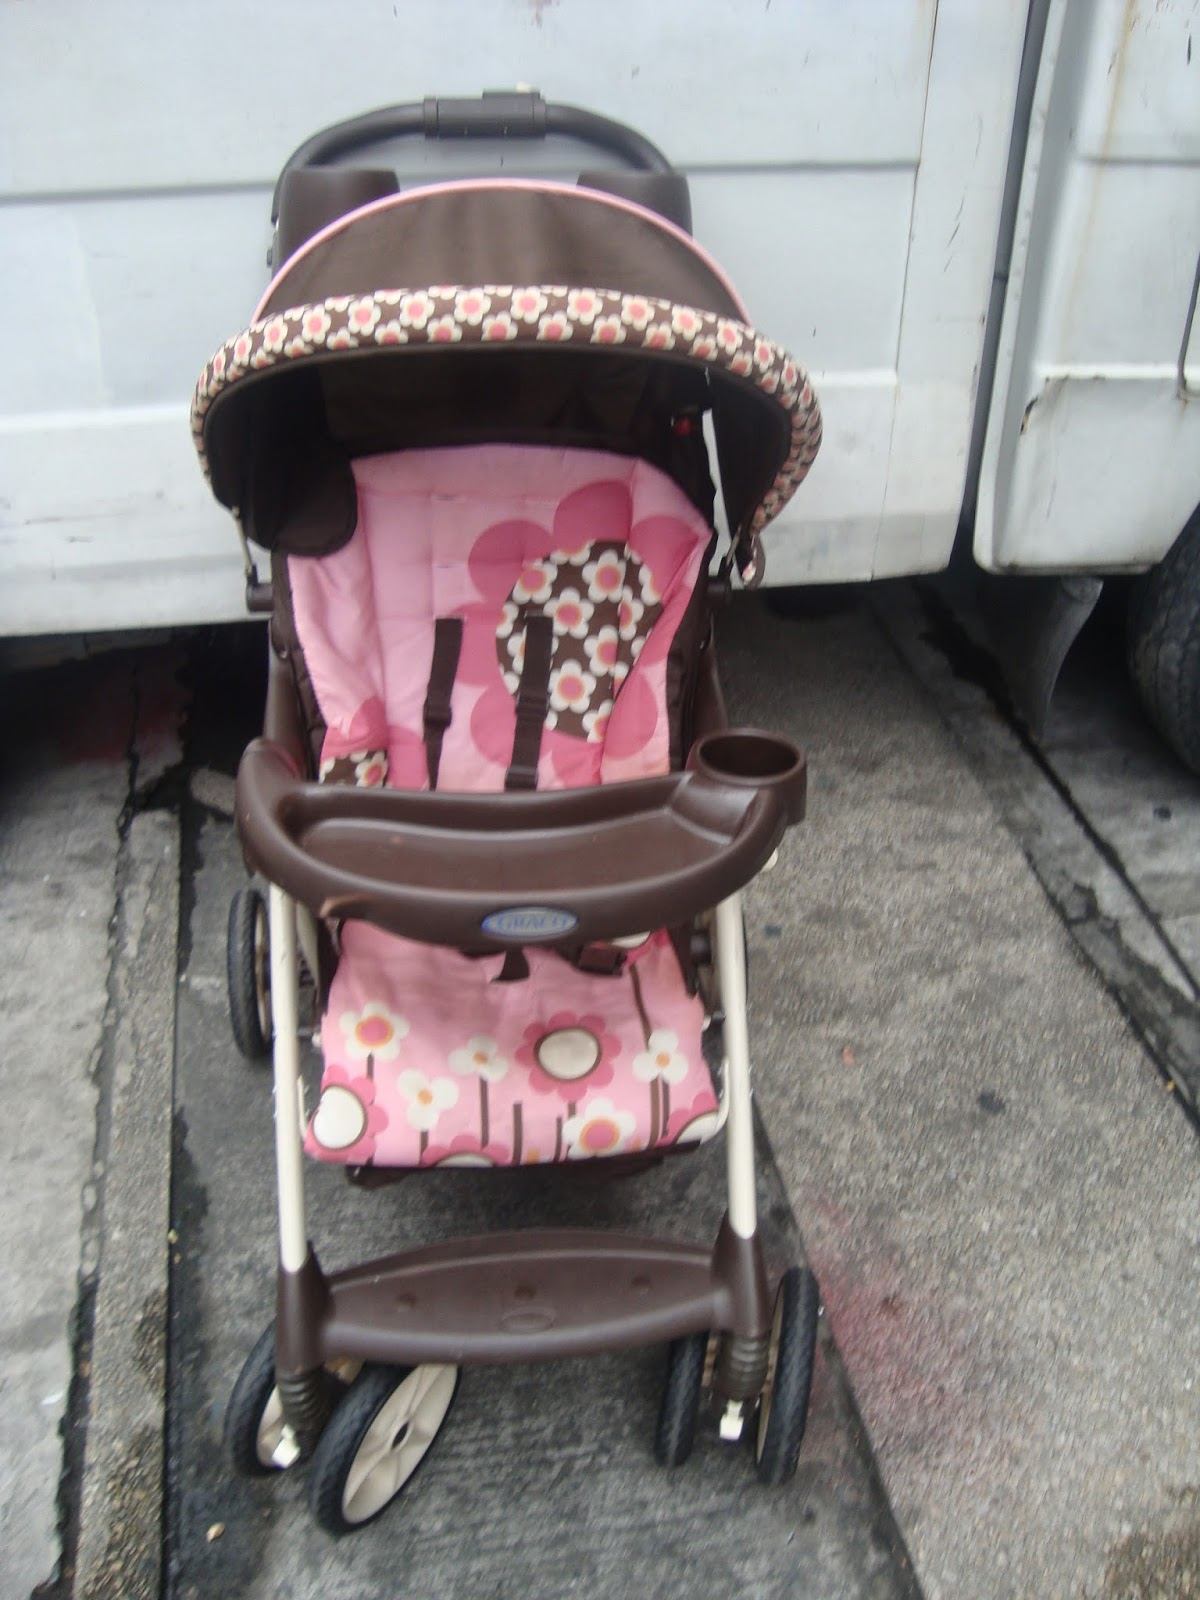 MommysLove4Baby143: Graco pink floral stroller 3999p sold